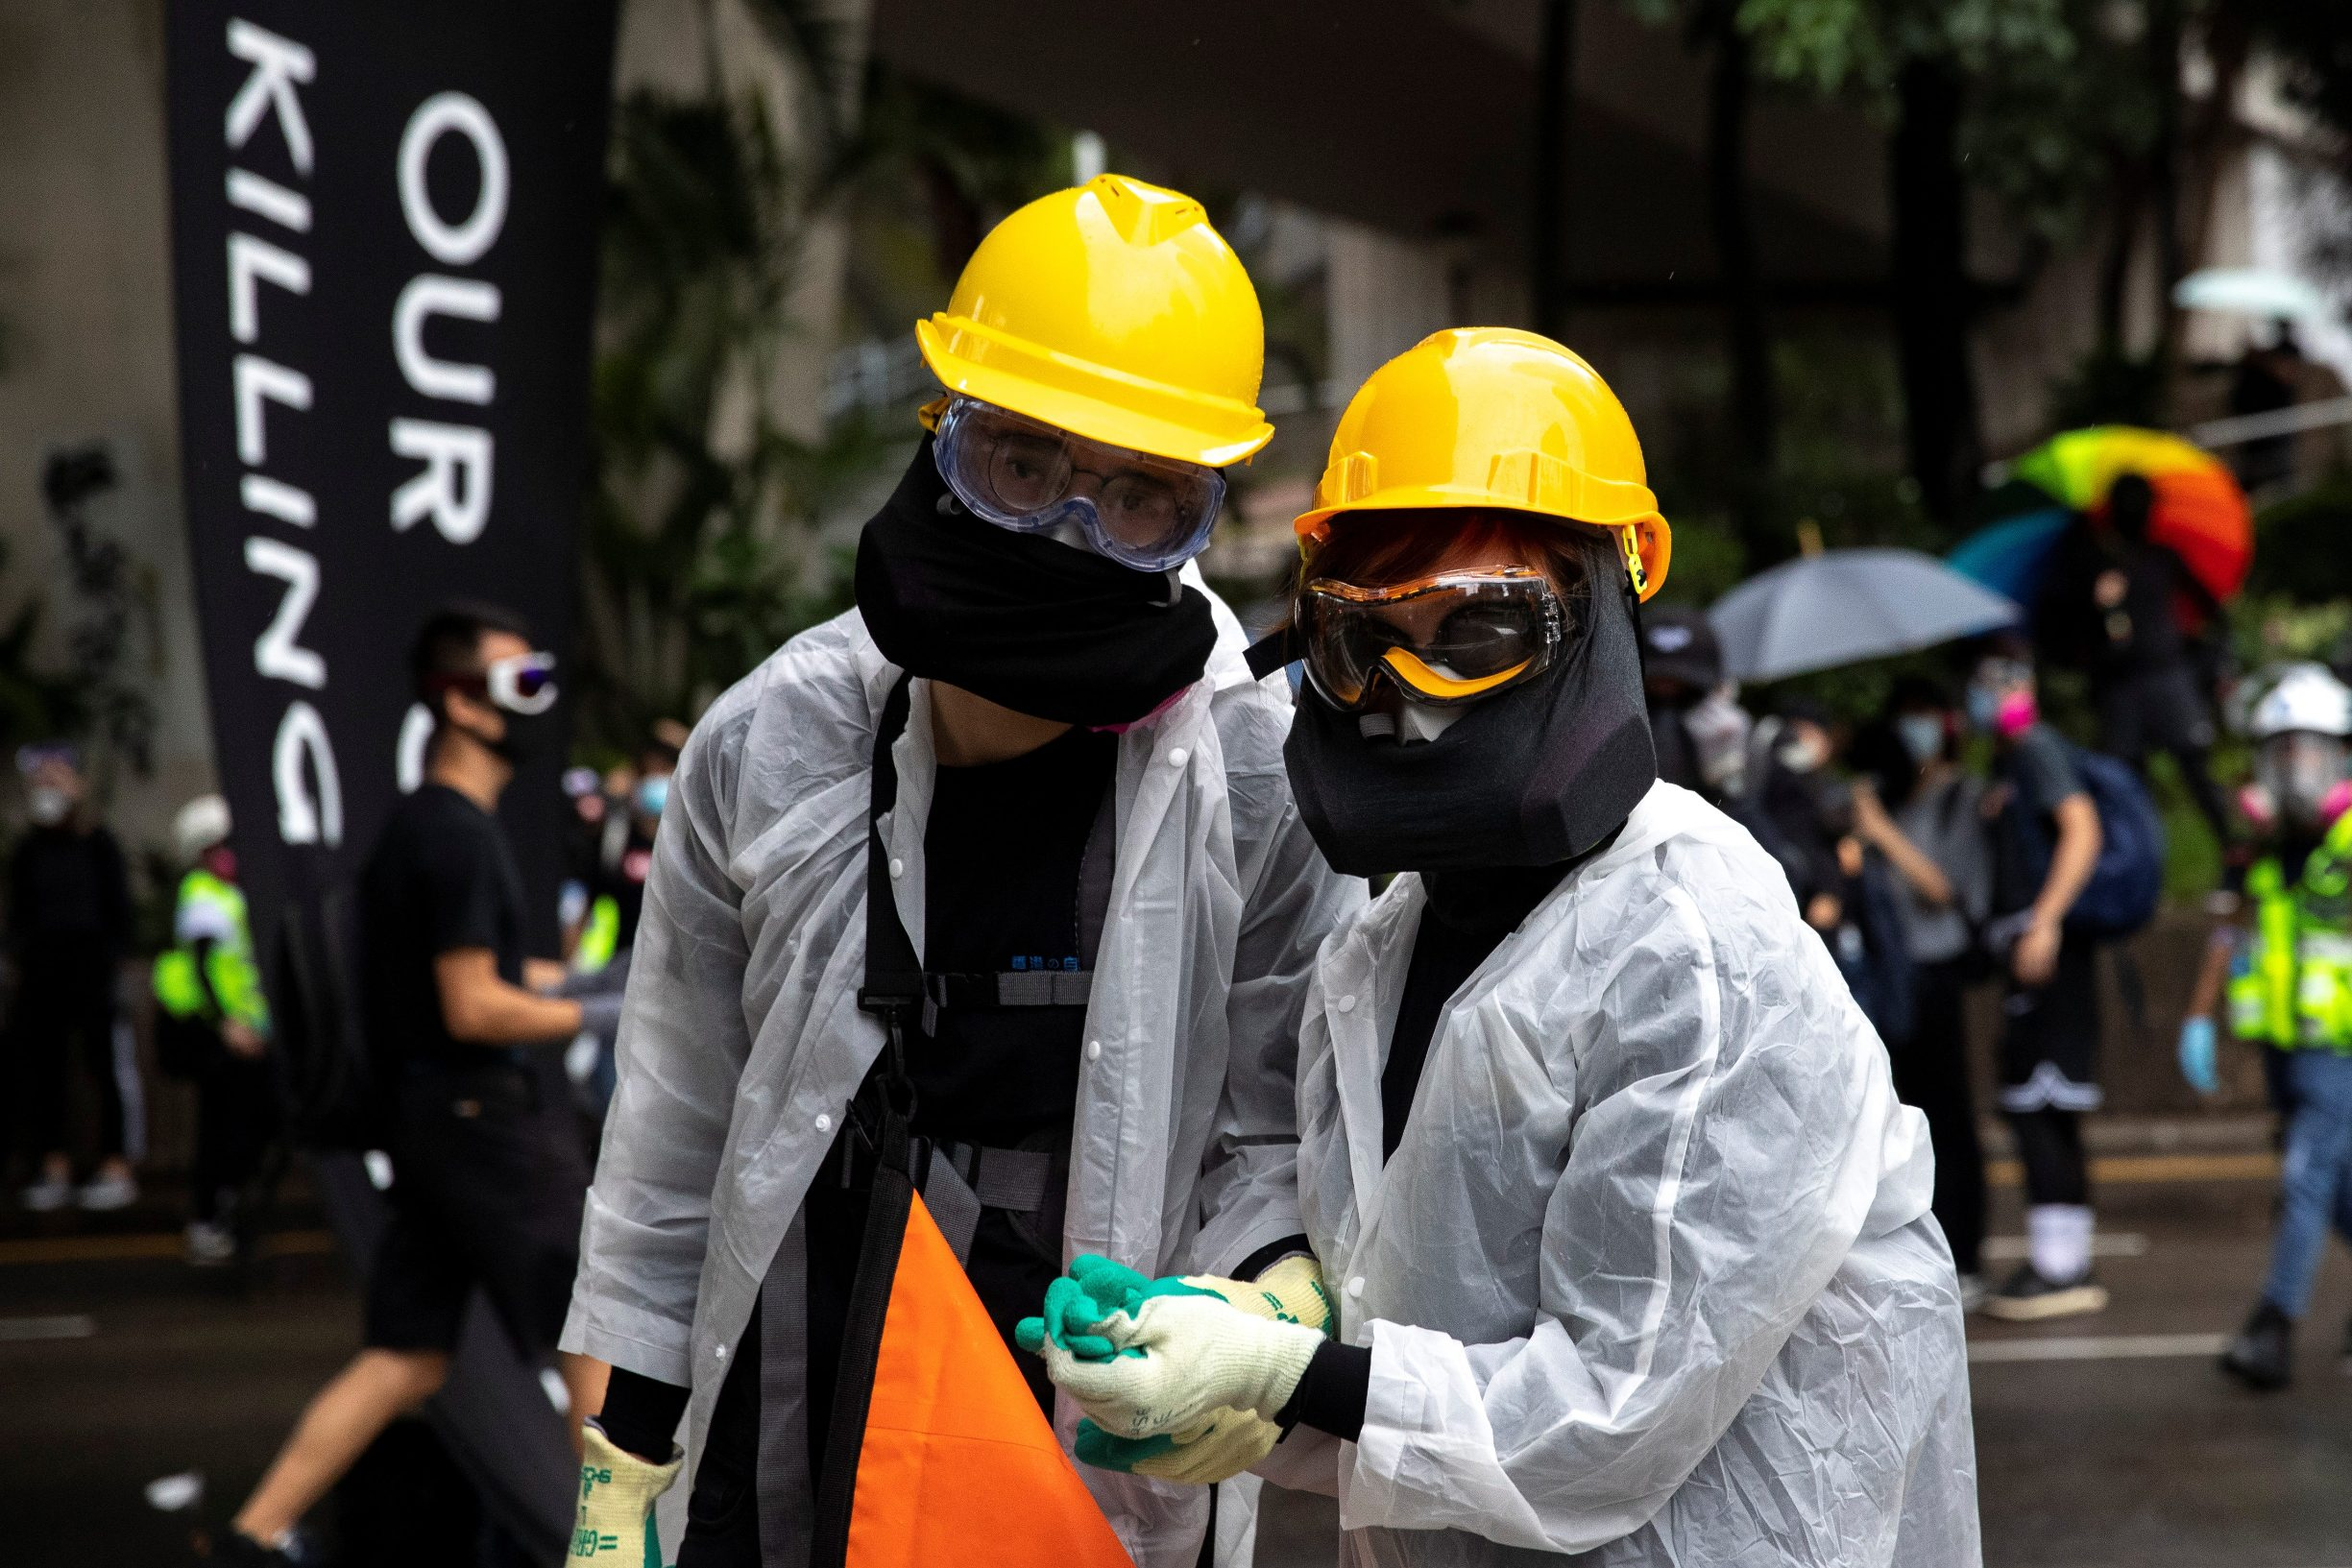 2019-10-06T151335Z_1536455771_RC14AA7B3D40_RTRMADP_3_HONGKONG-PROTESTS